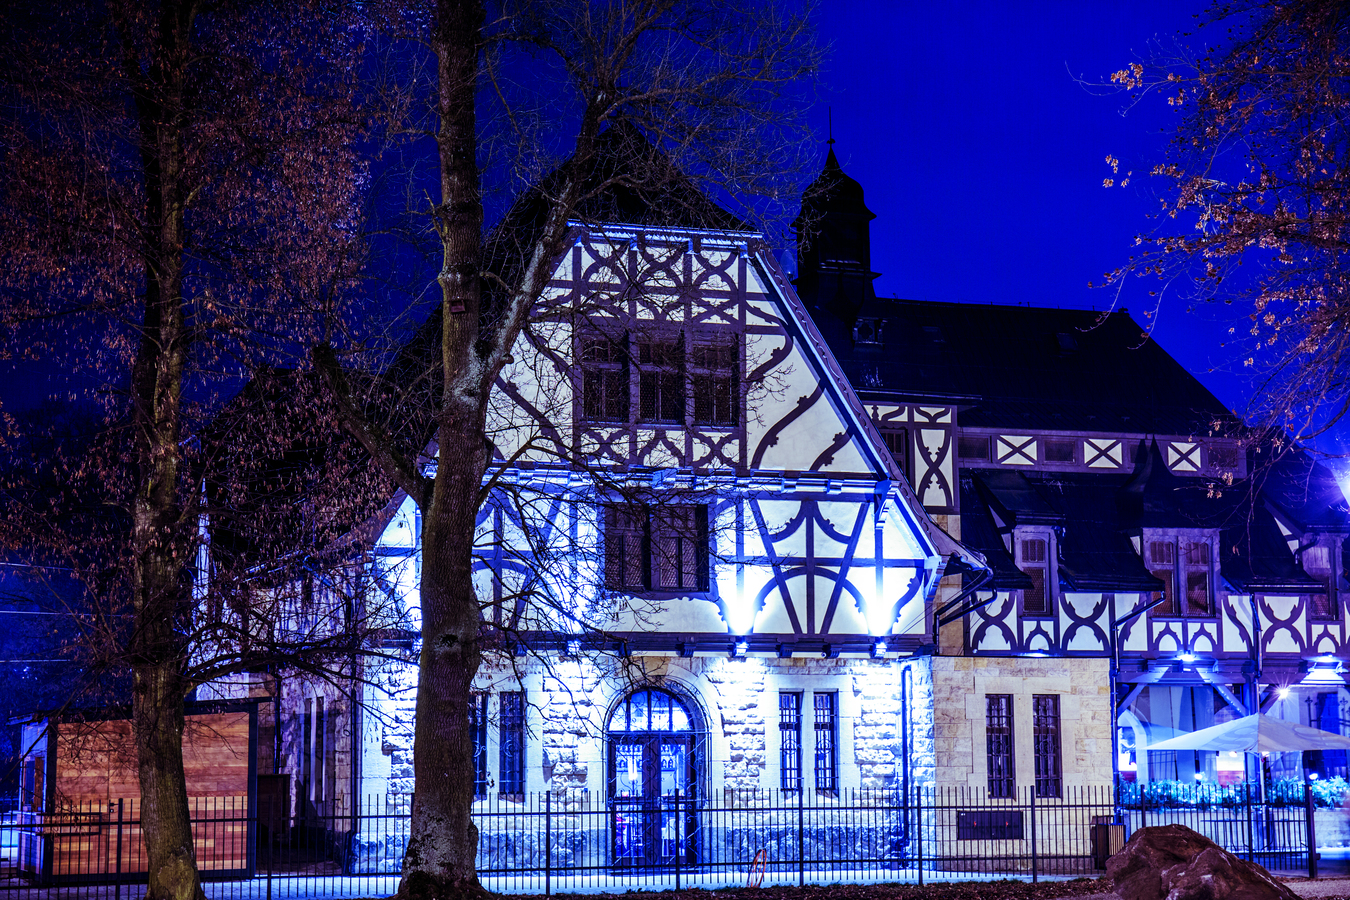 Chateau stables restaurant night